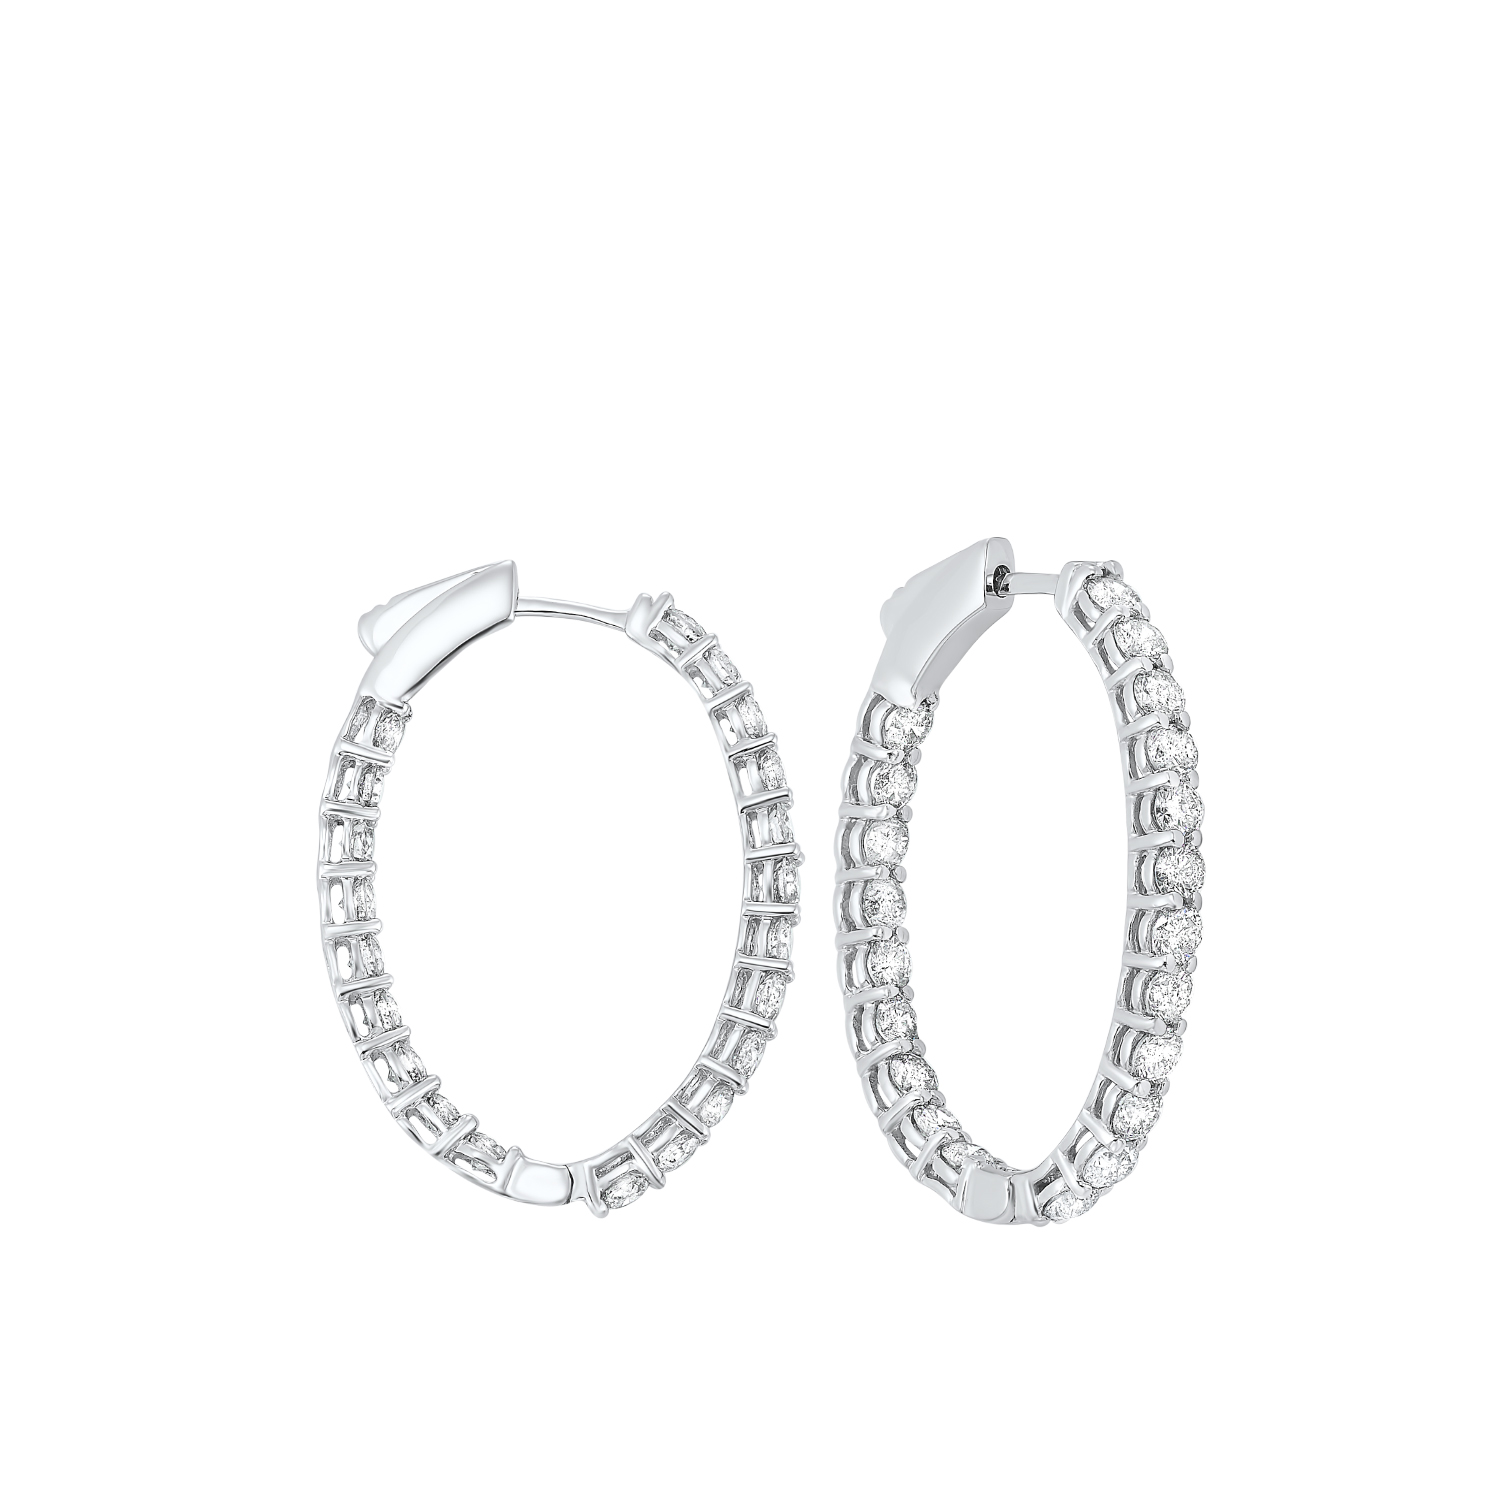 In-Out Diamond Hoop Earrings in 14K White Gold (3 ct. tw.) I2/I3 - H/K - Our beautiful  In-Out Diamond Hoop Earrings in 14K White Gold (3 ct. tw.)  is the perfect jewelry choice for you or your loved one. We have engagement rings, wedding bands, earrings, and so much more.